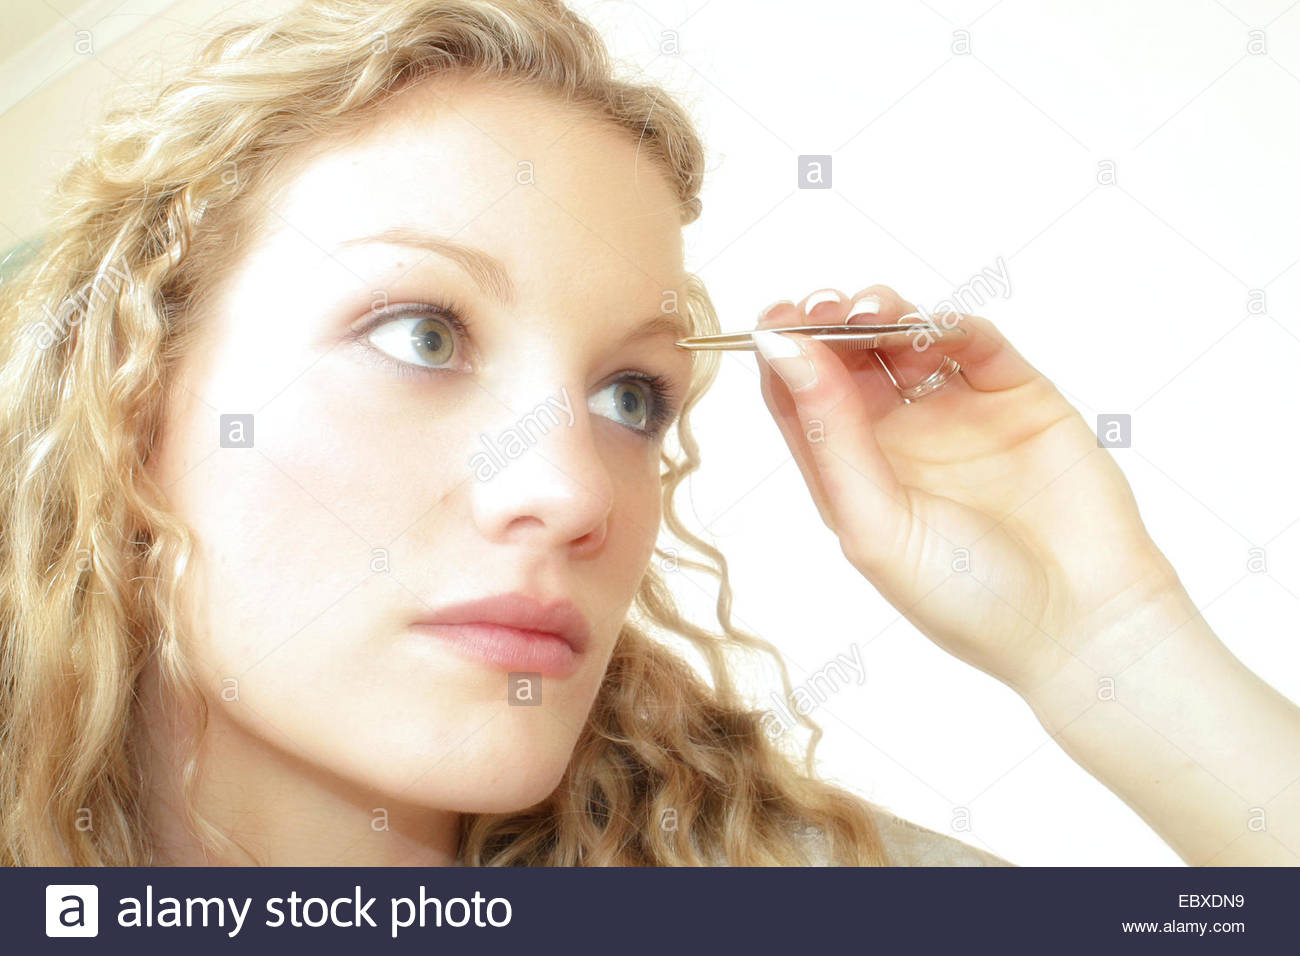 Woman Is Picking Her Eyebrows Stock Photo 76184229 Alamy